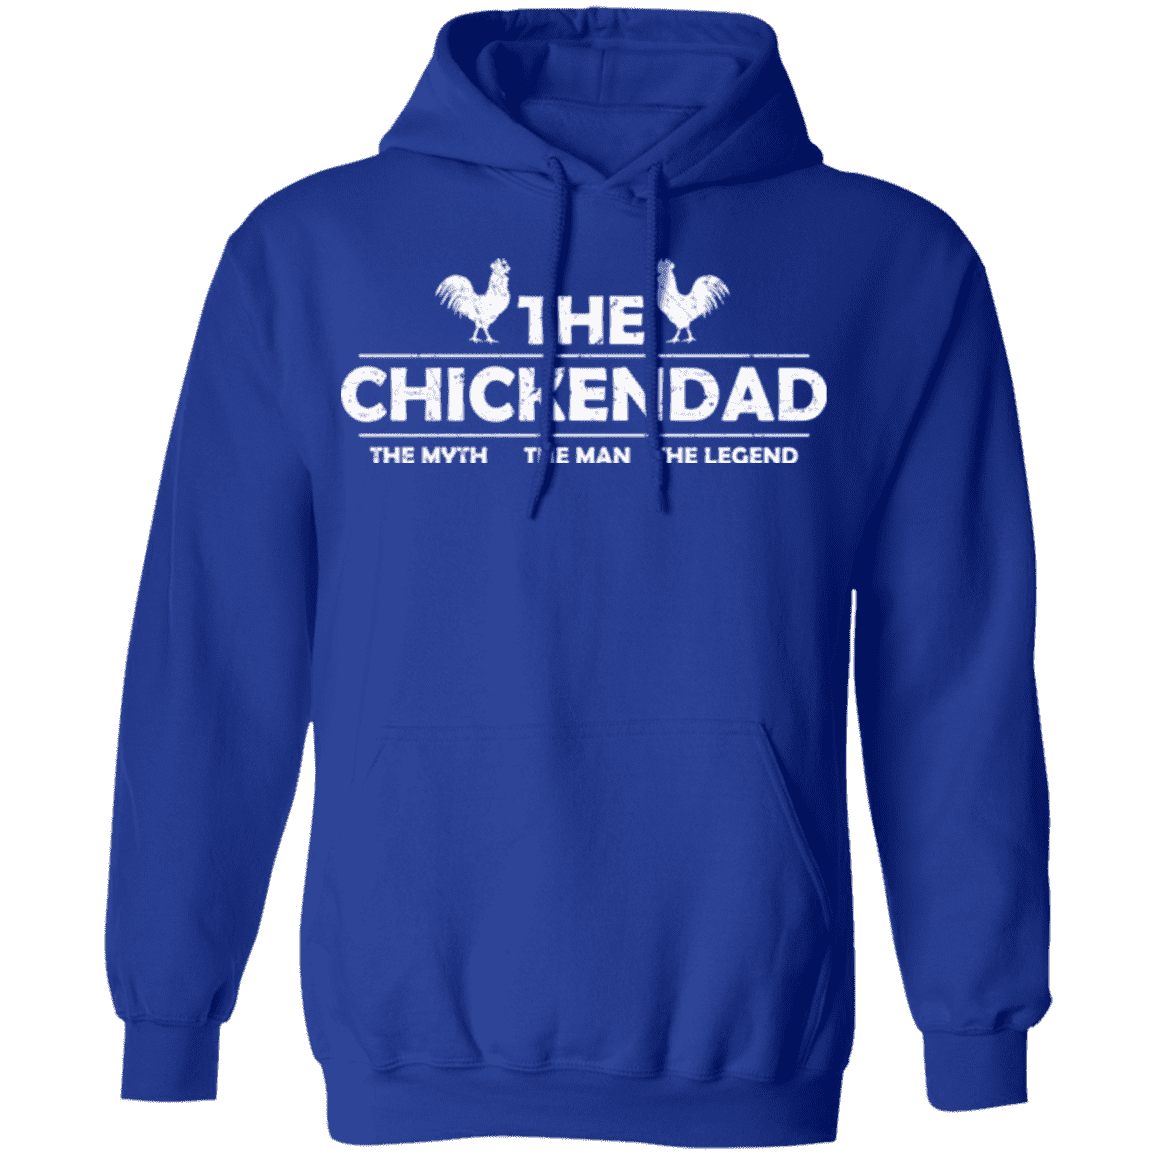 THE CHICKEN DAD Pullover Hoodie 8 oz.